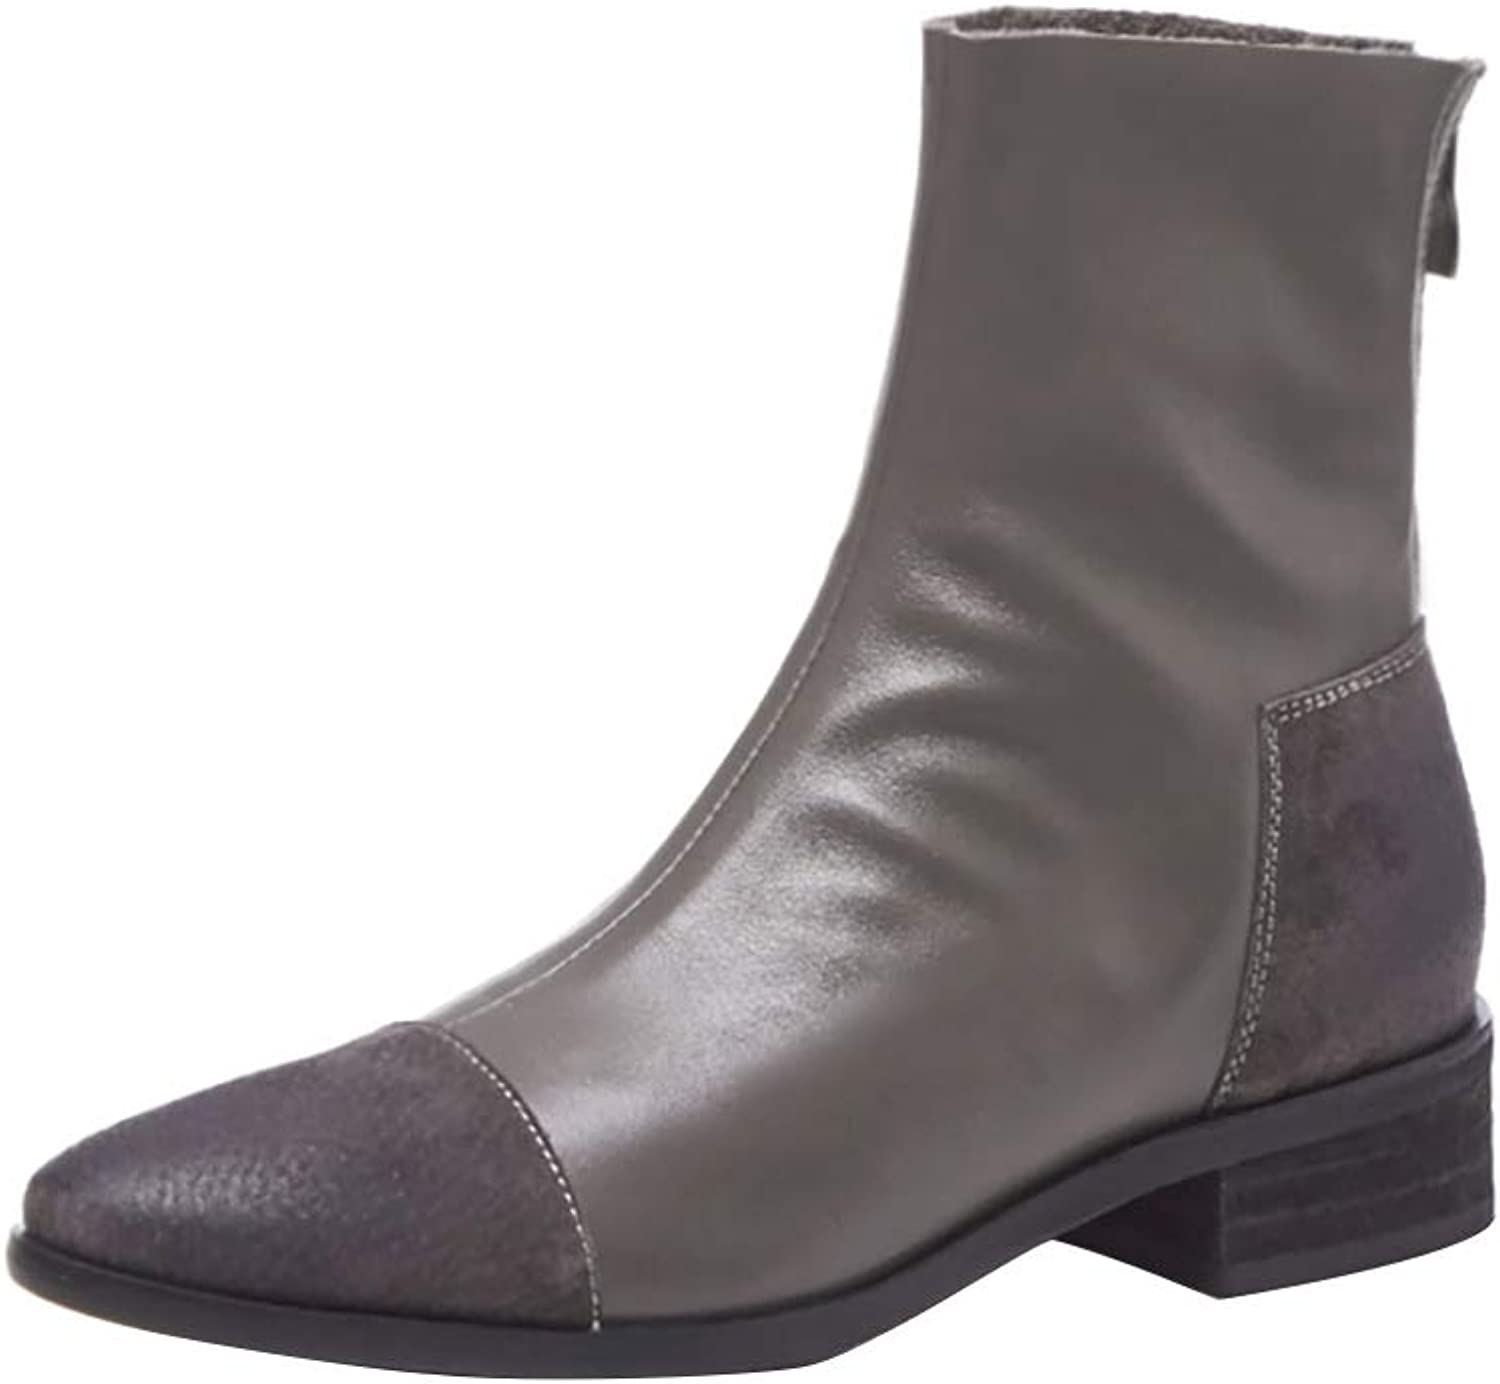 MAYPIE Womens Toalone Leather Zipper Ankle Boots